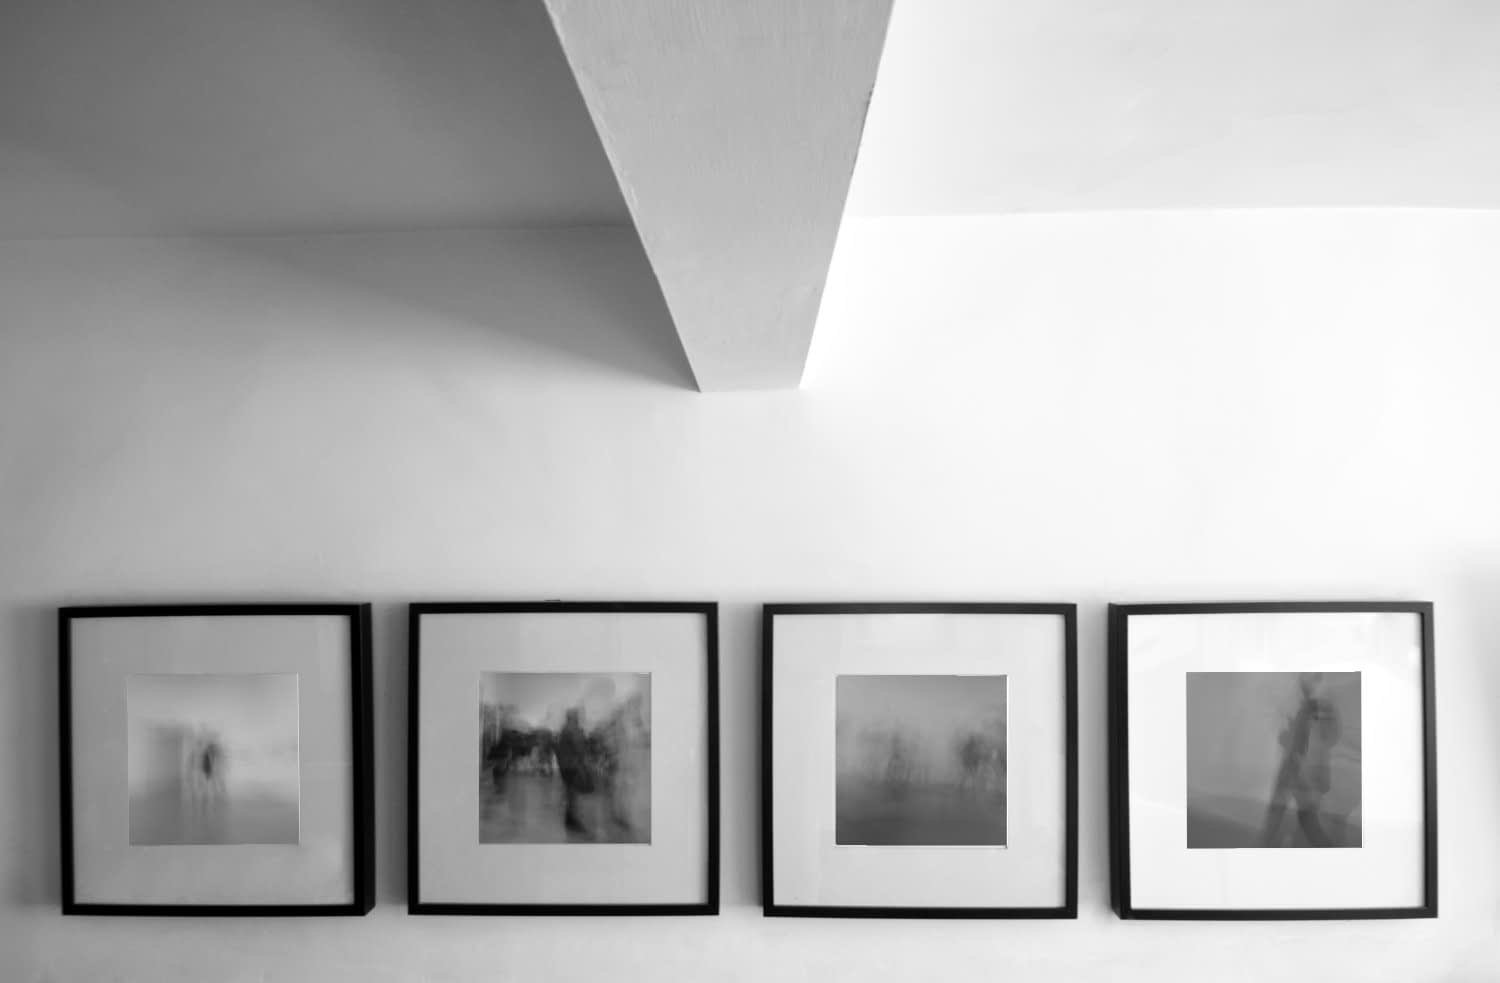 Series of four photo prints of people moving through a gallery